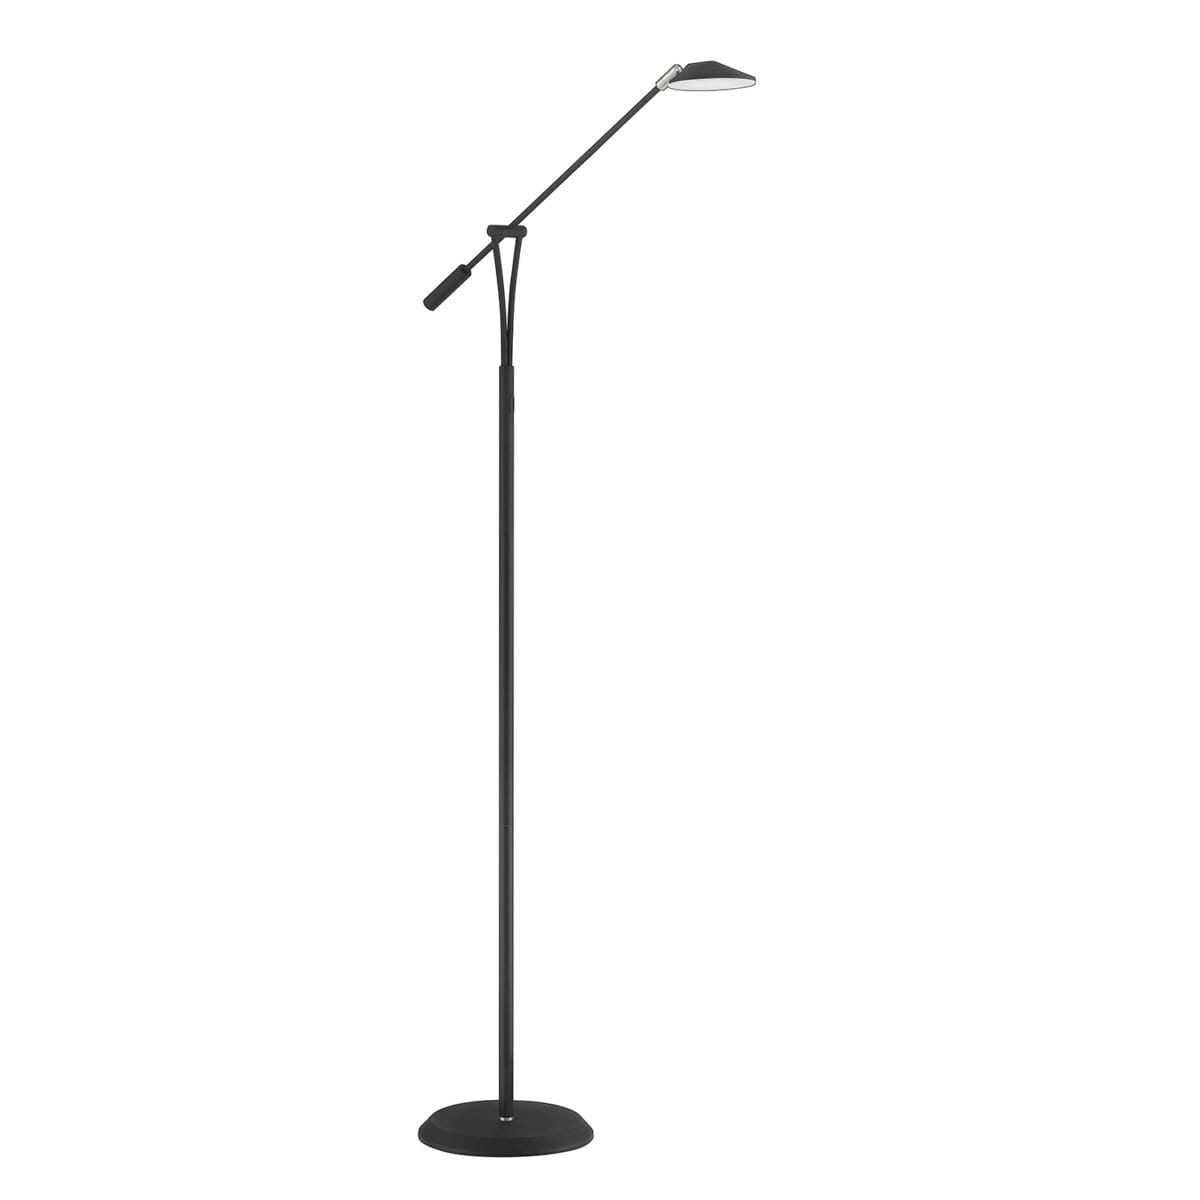 148 FL5015 BLK/SN LED Floor Lamp available in  Black with Satin Nickle  or Satin Nickle Regular Price $238.99 Sale Price $167.99